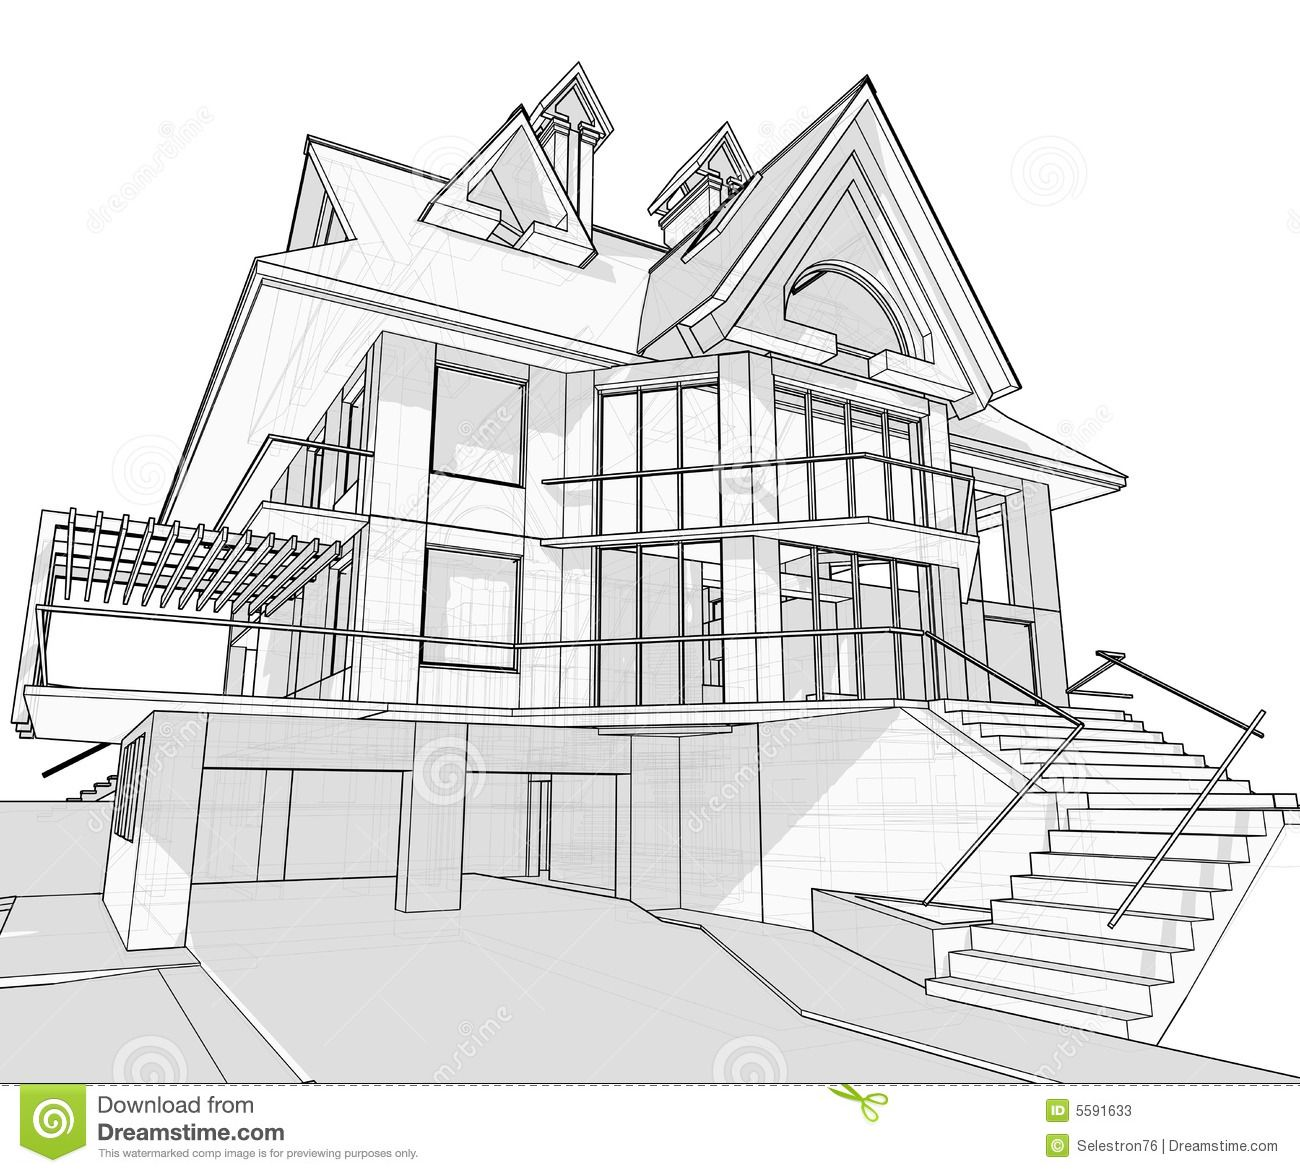 Modern house vector technical drawing from dreamstime httpswww house malvernweather Images